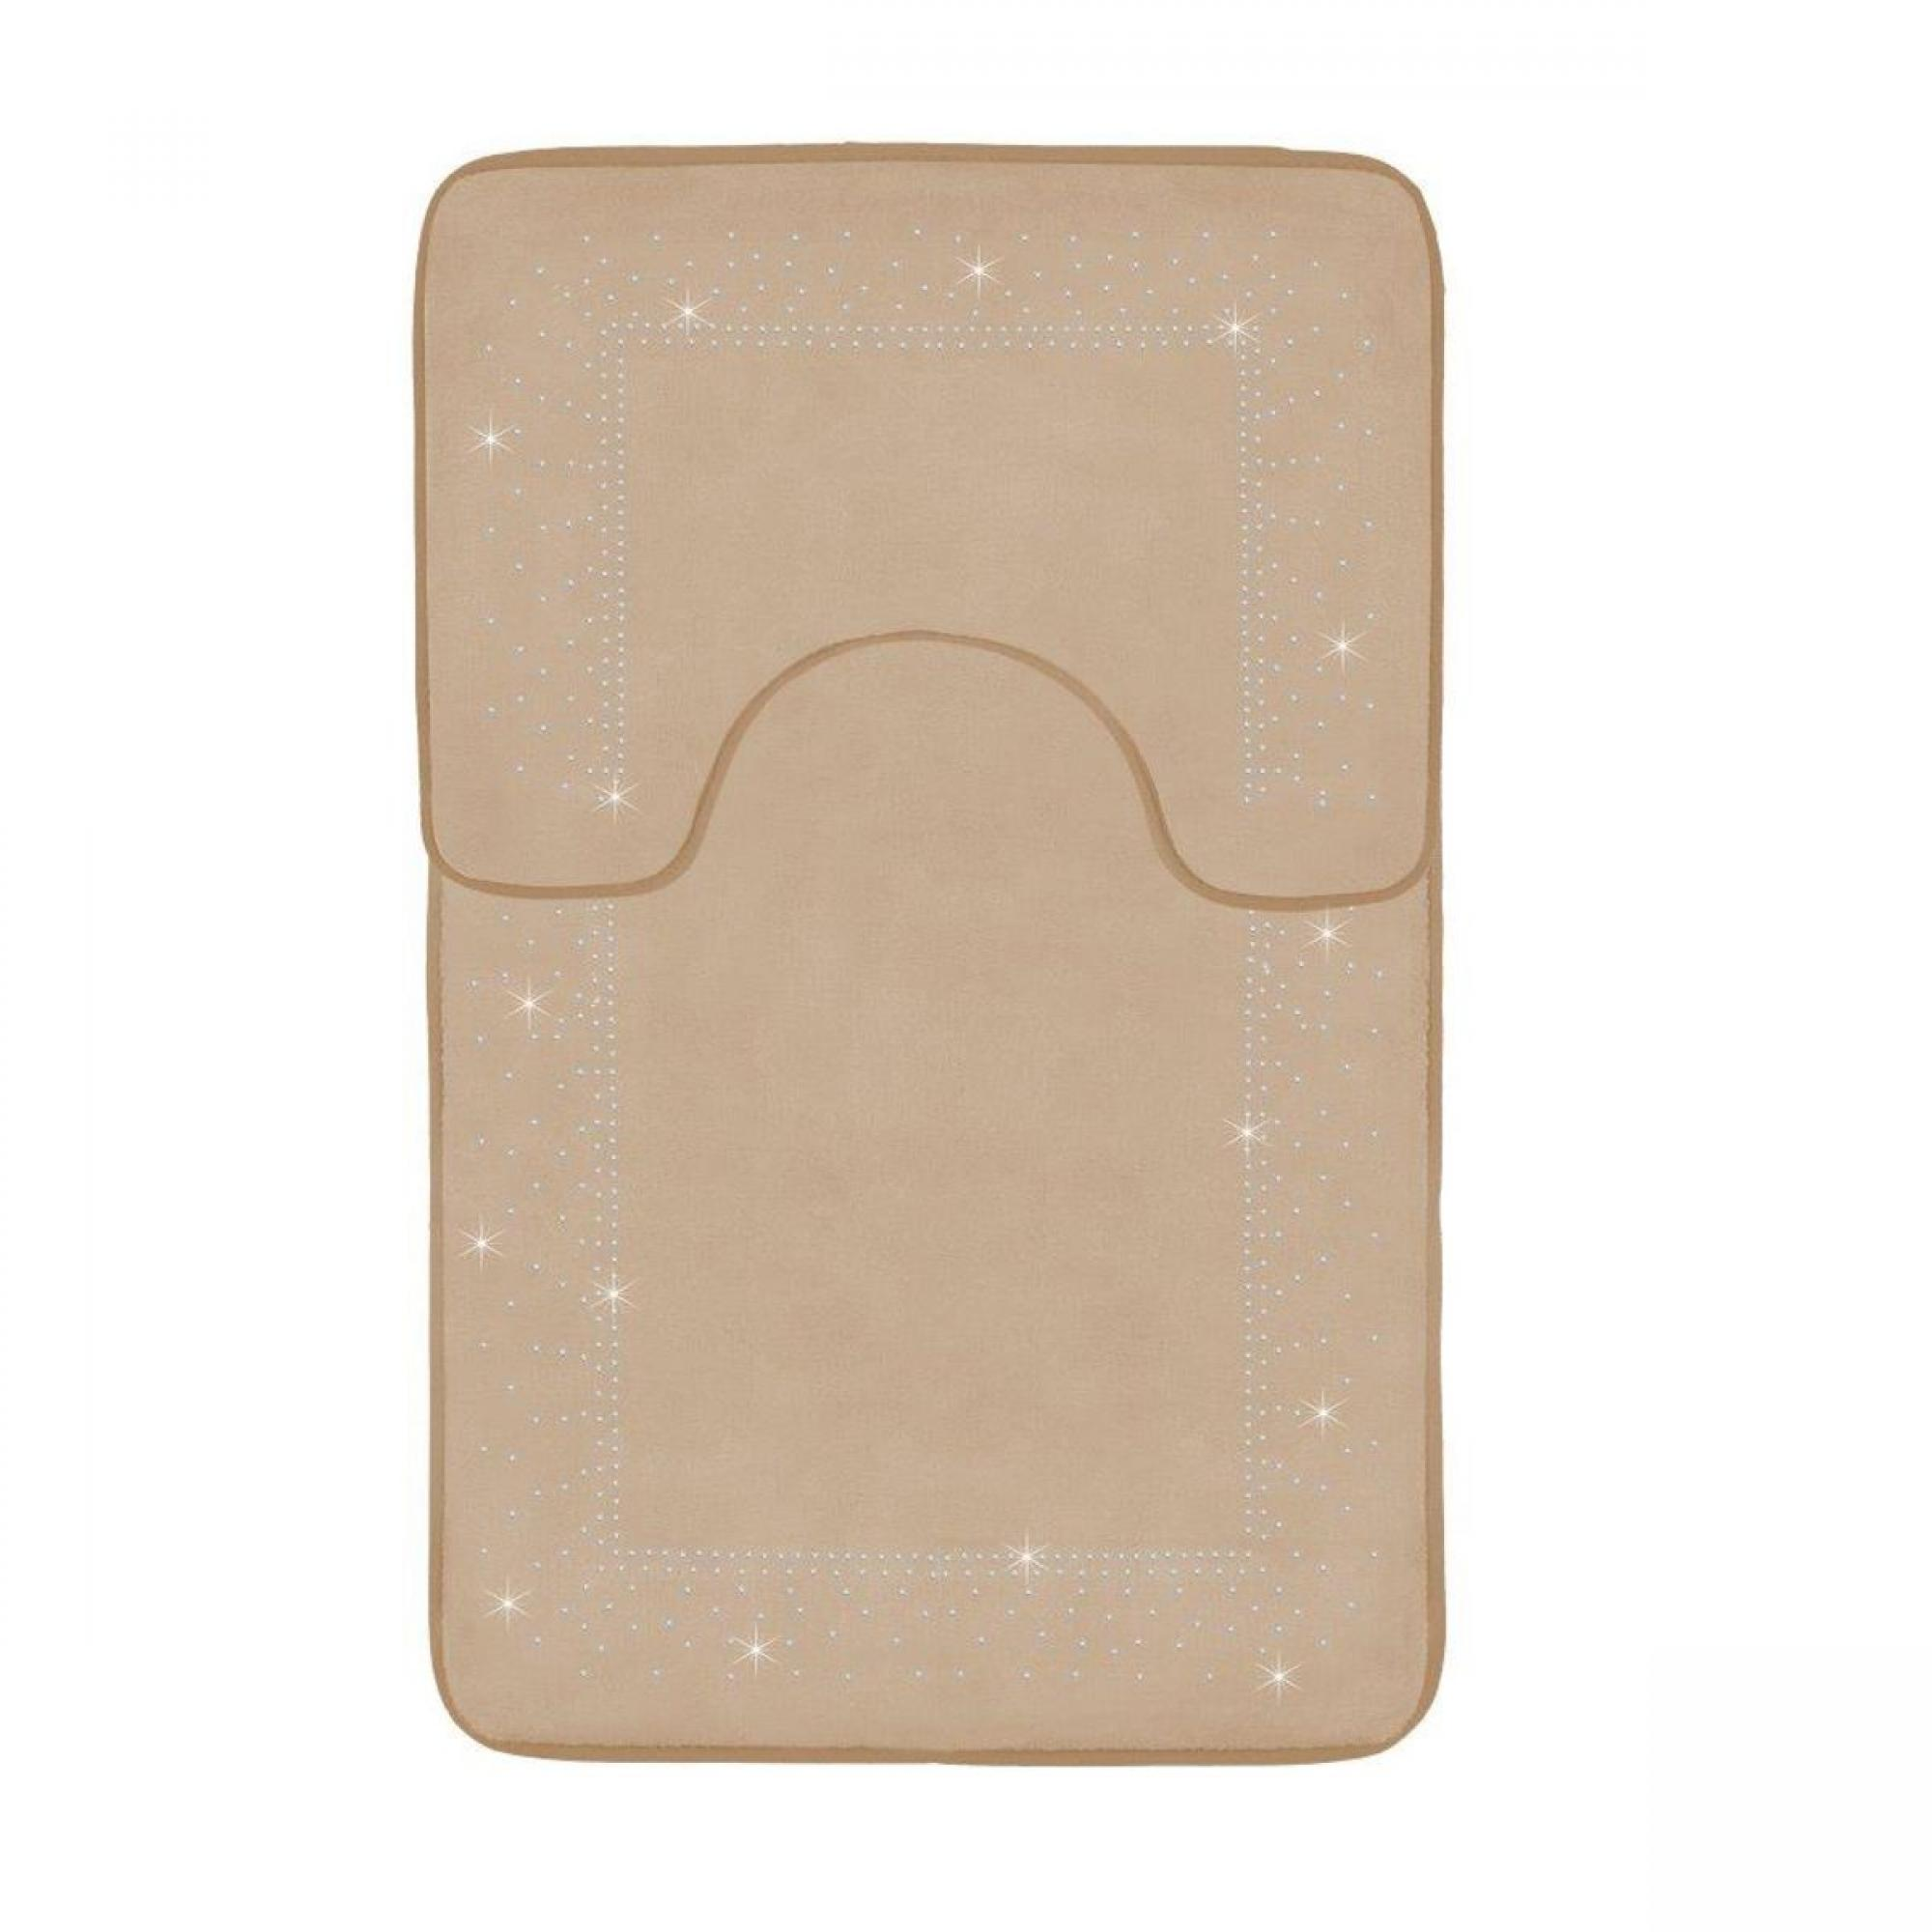 2PC SPARKLE MEMORY BATH MAT NATURAL - 41167150